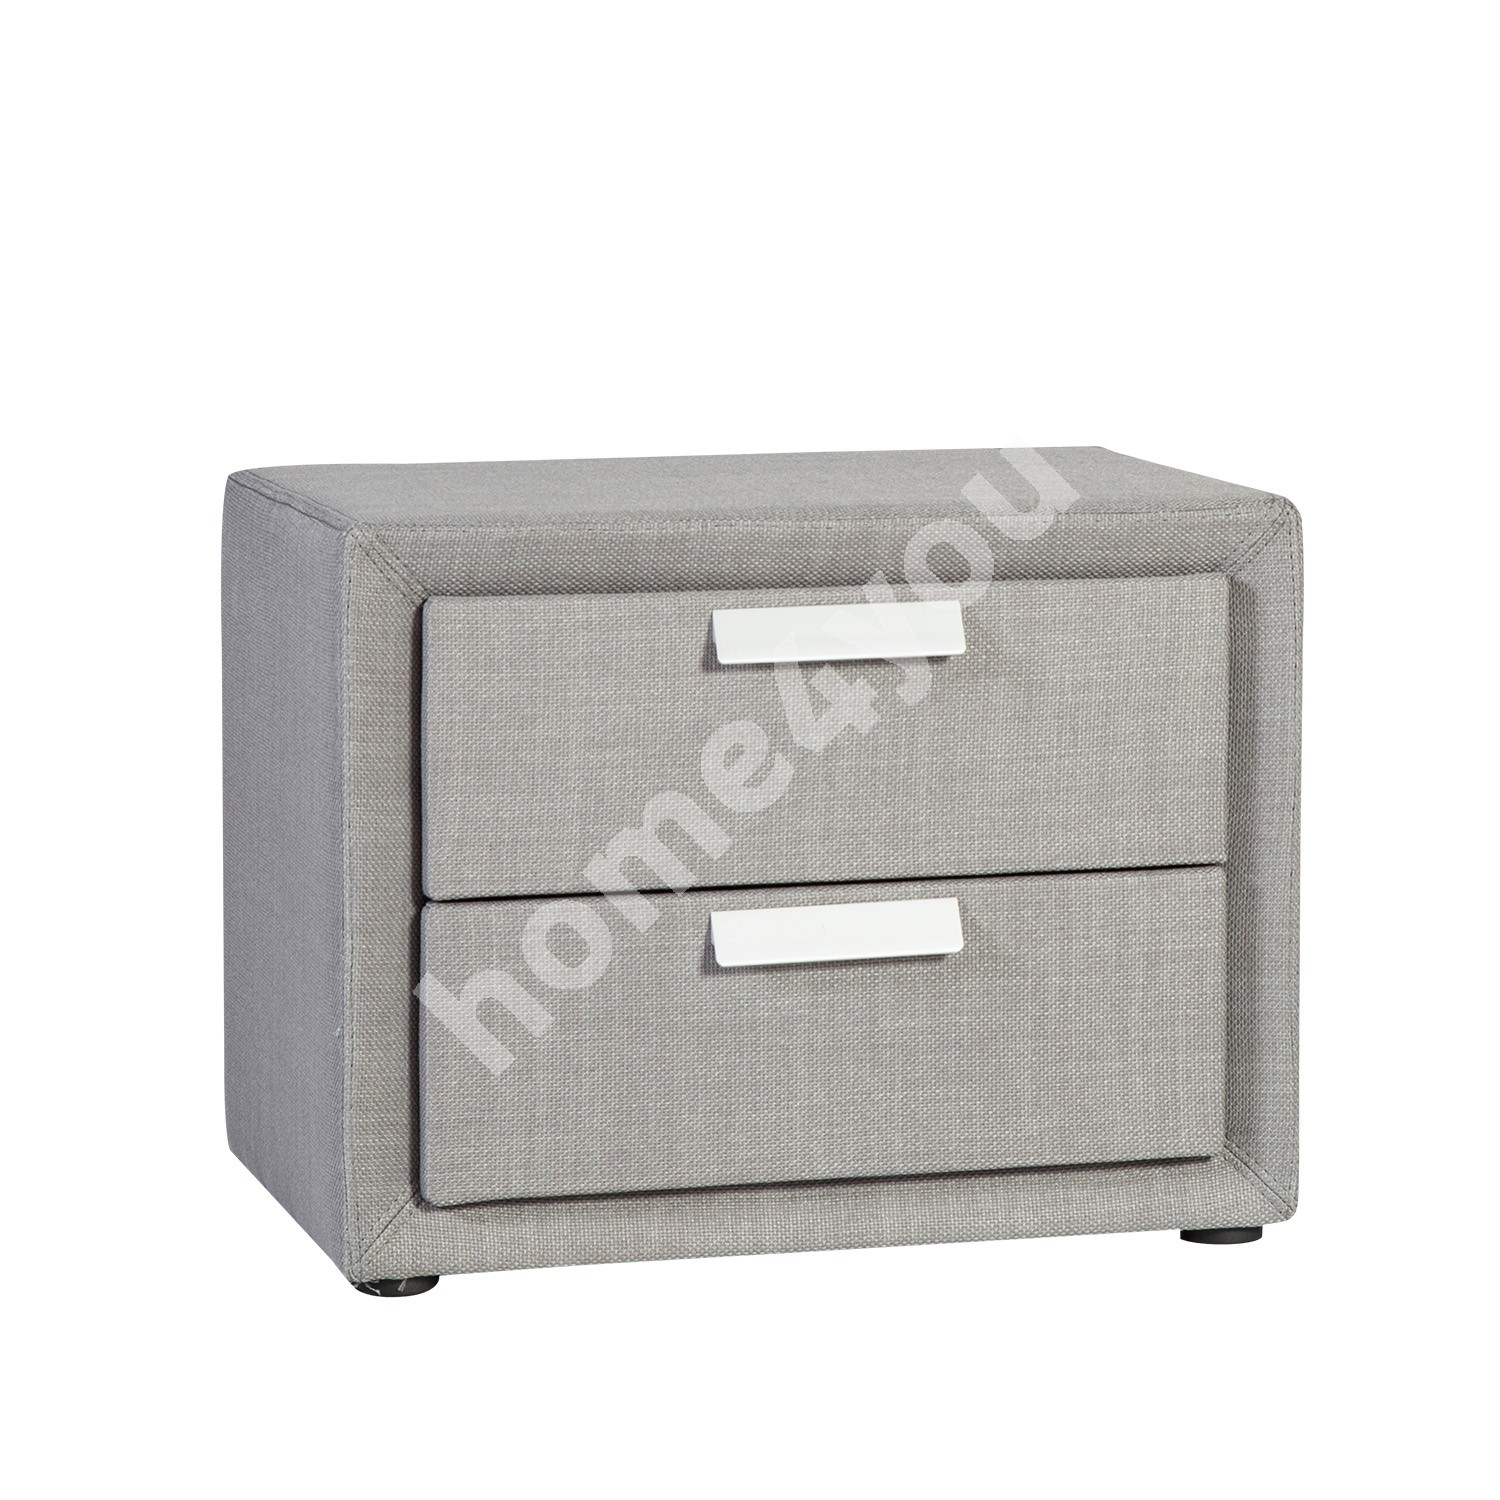 Night stand CAREN with 2 drawers 50,5x41xH40cm, frame is covered with fabric, color: grey